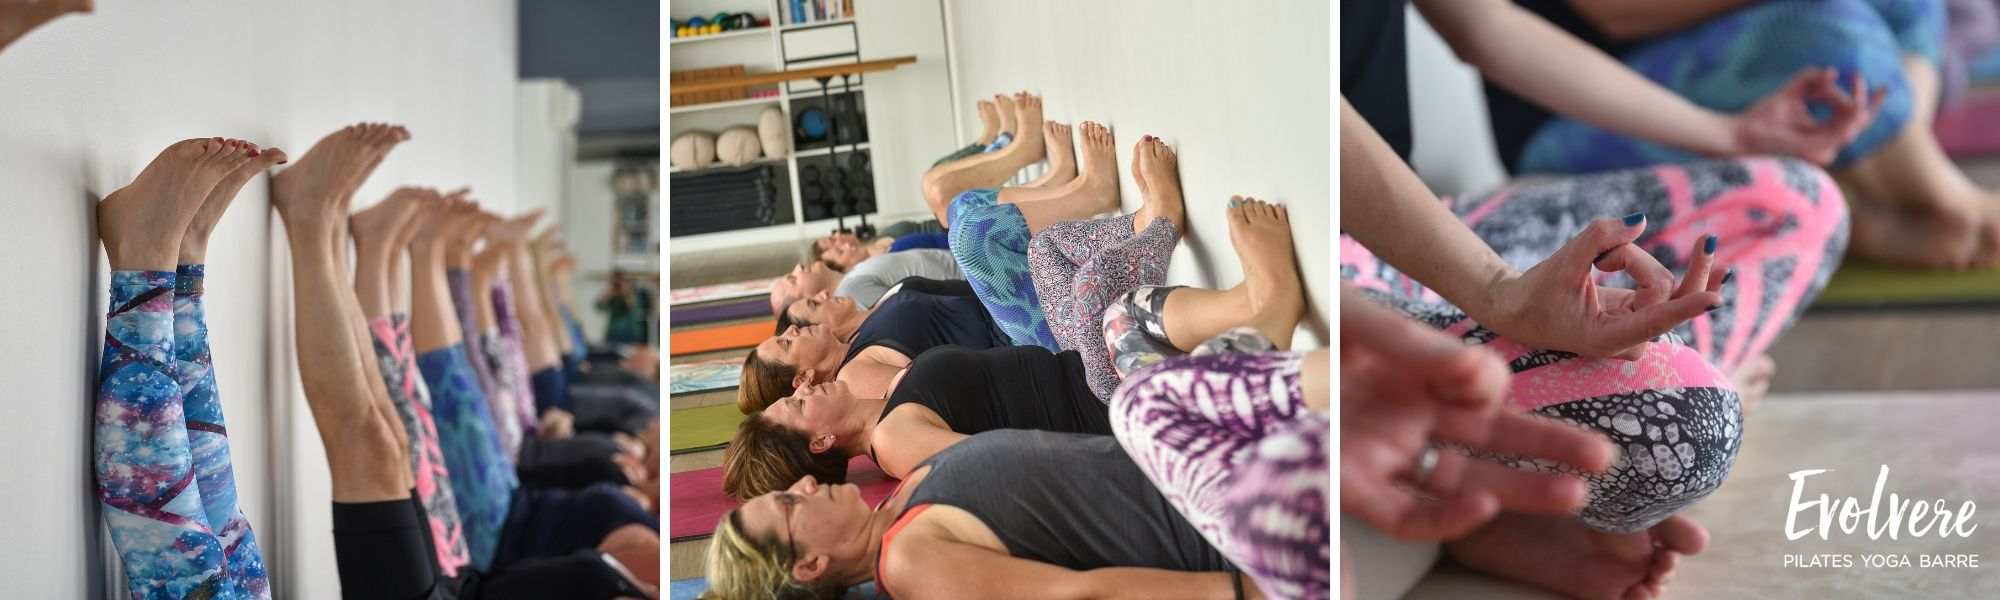 Relaxing Gentle Yoga to restore and rebalance at Evolvere in Lane Cove